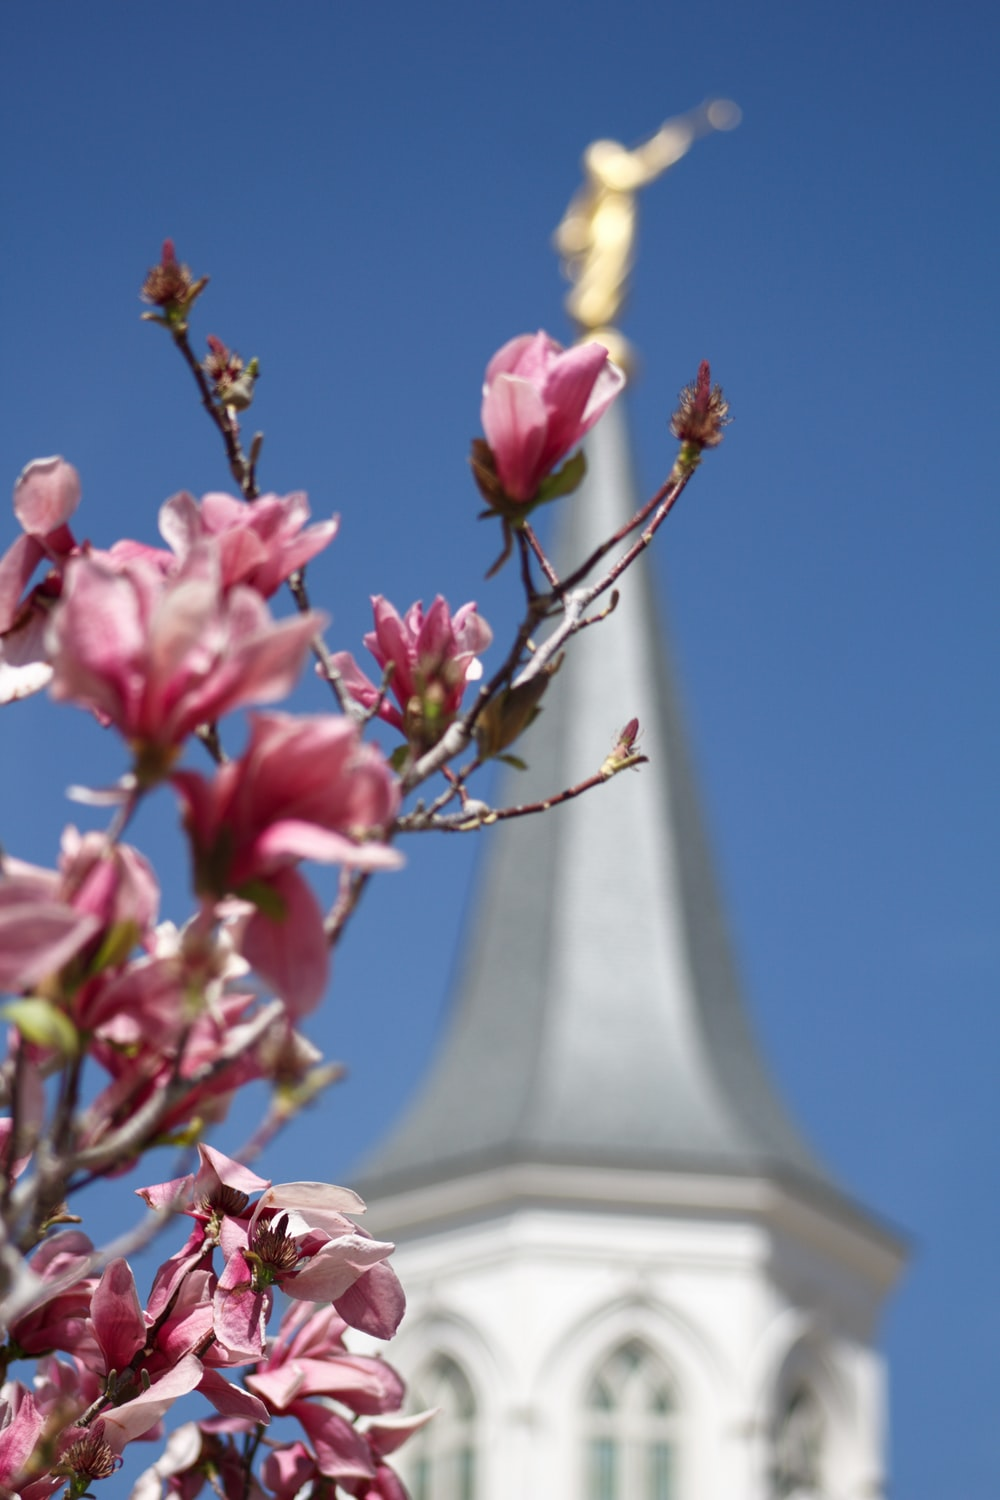 pink flowers near white concrete tower during daytime